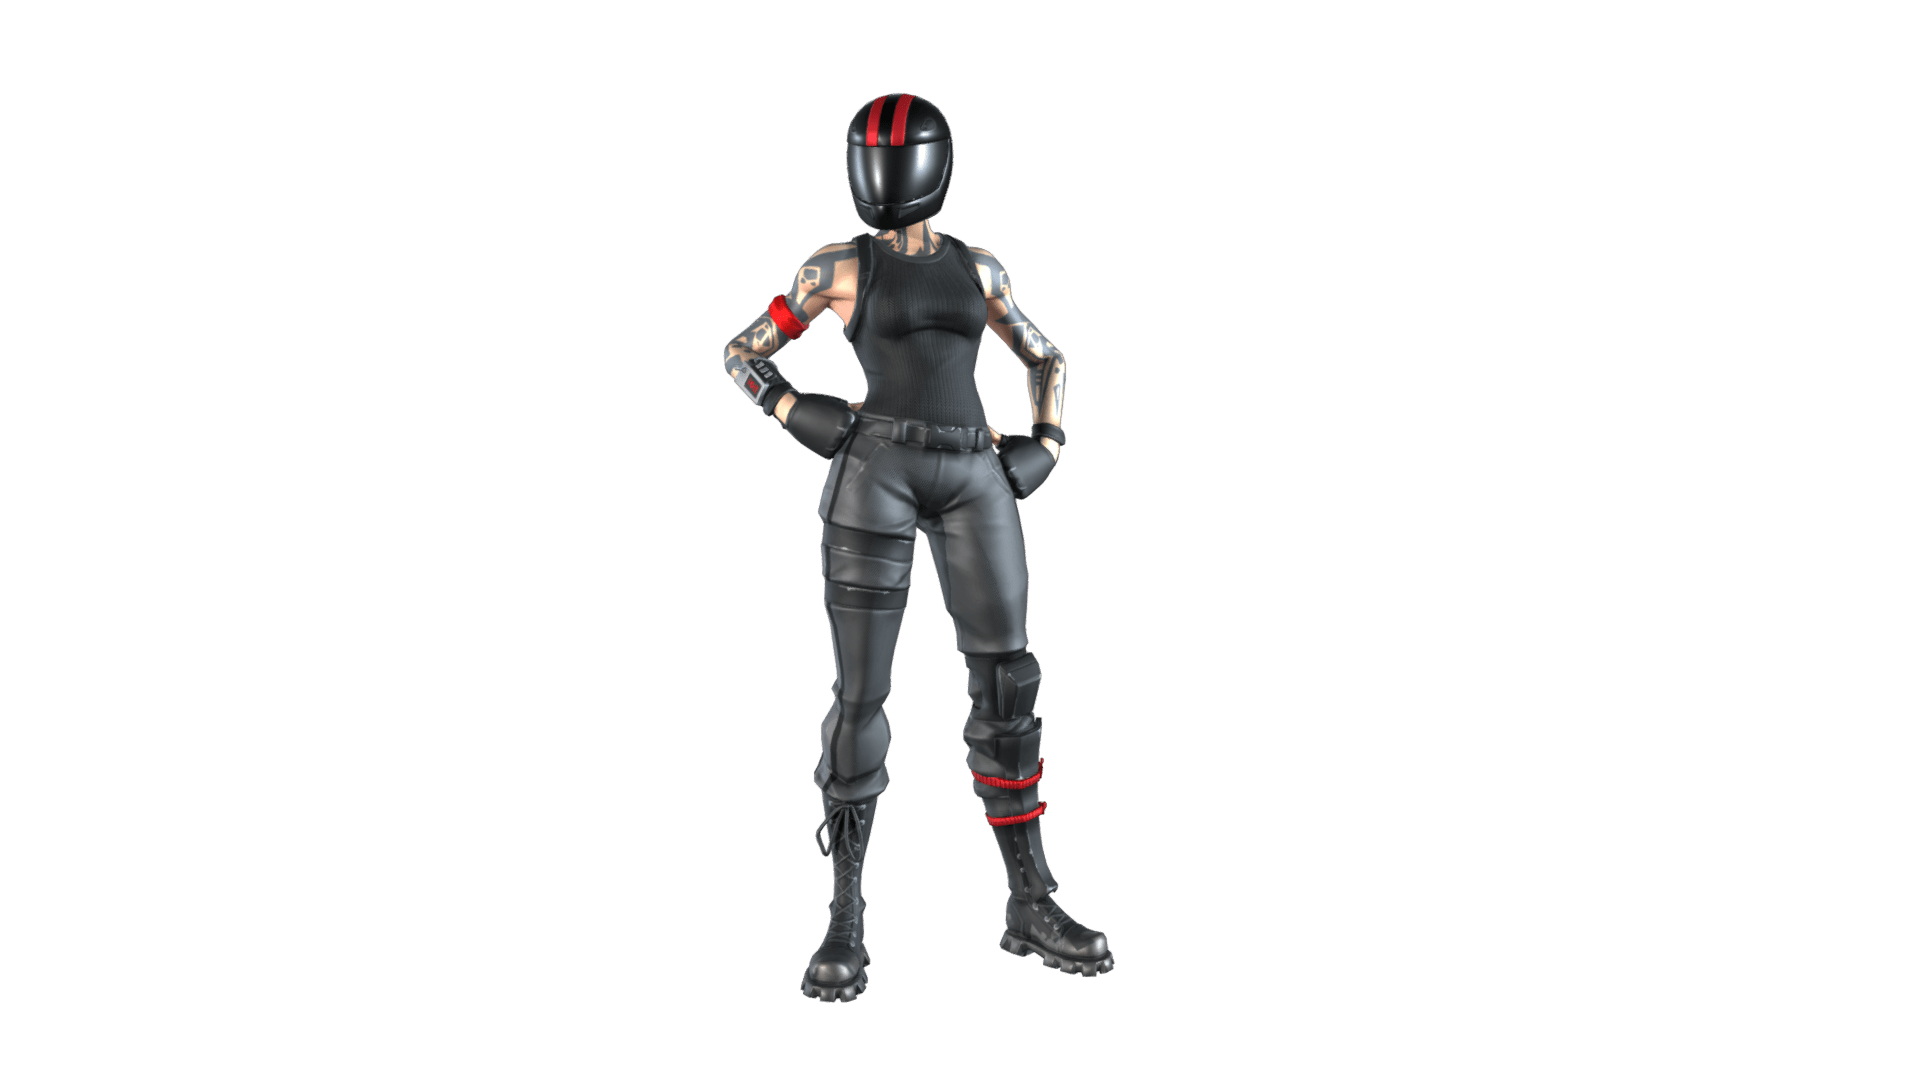 Fortnite Redline | Outfits - Fortnite Skins